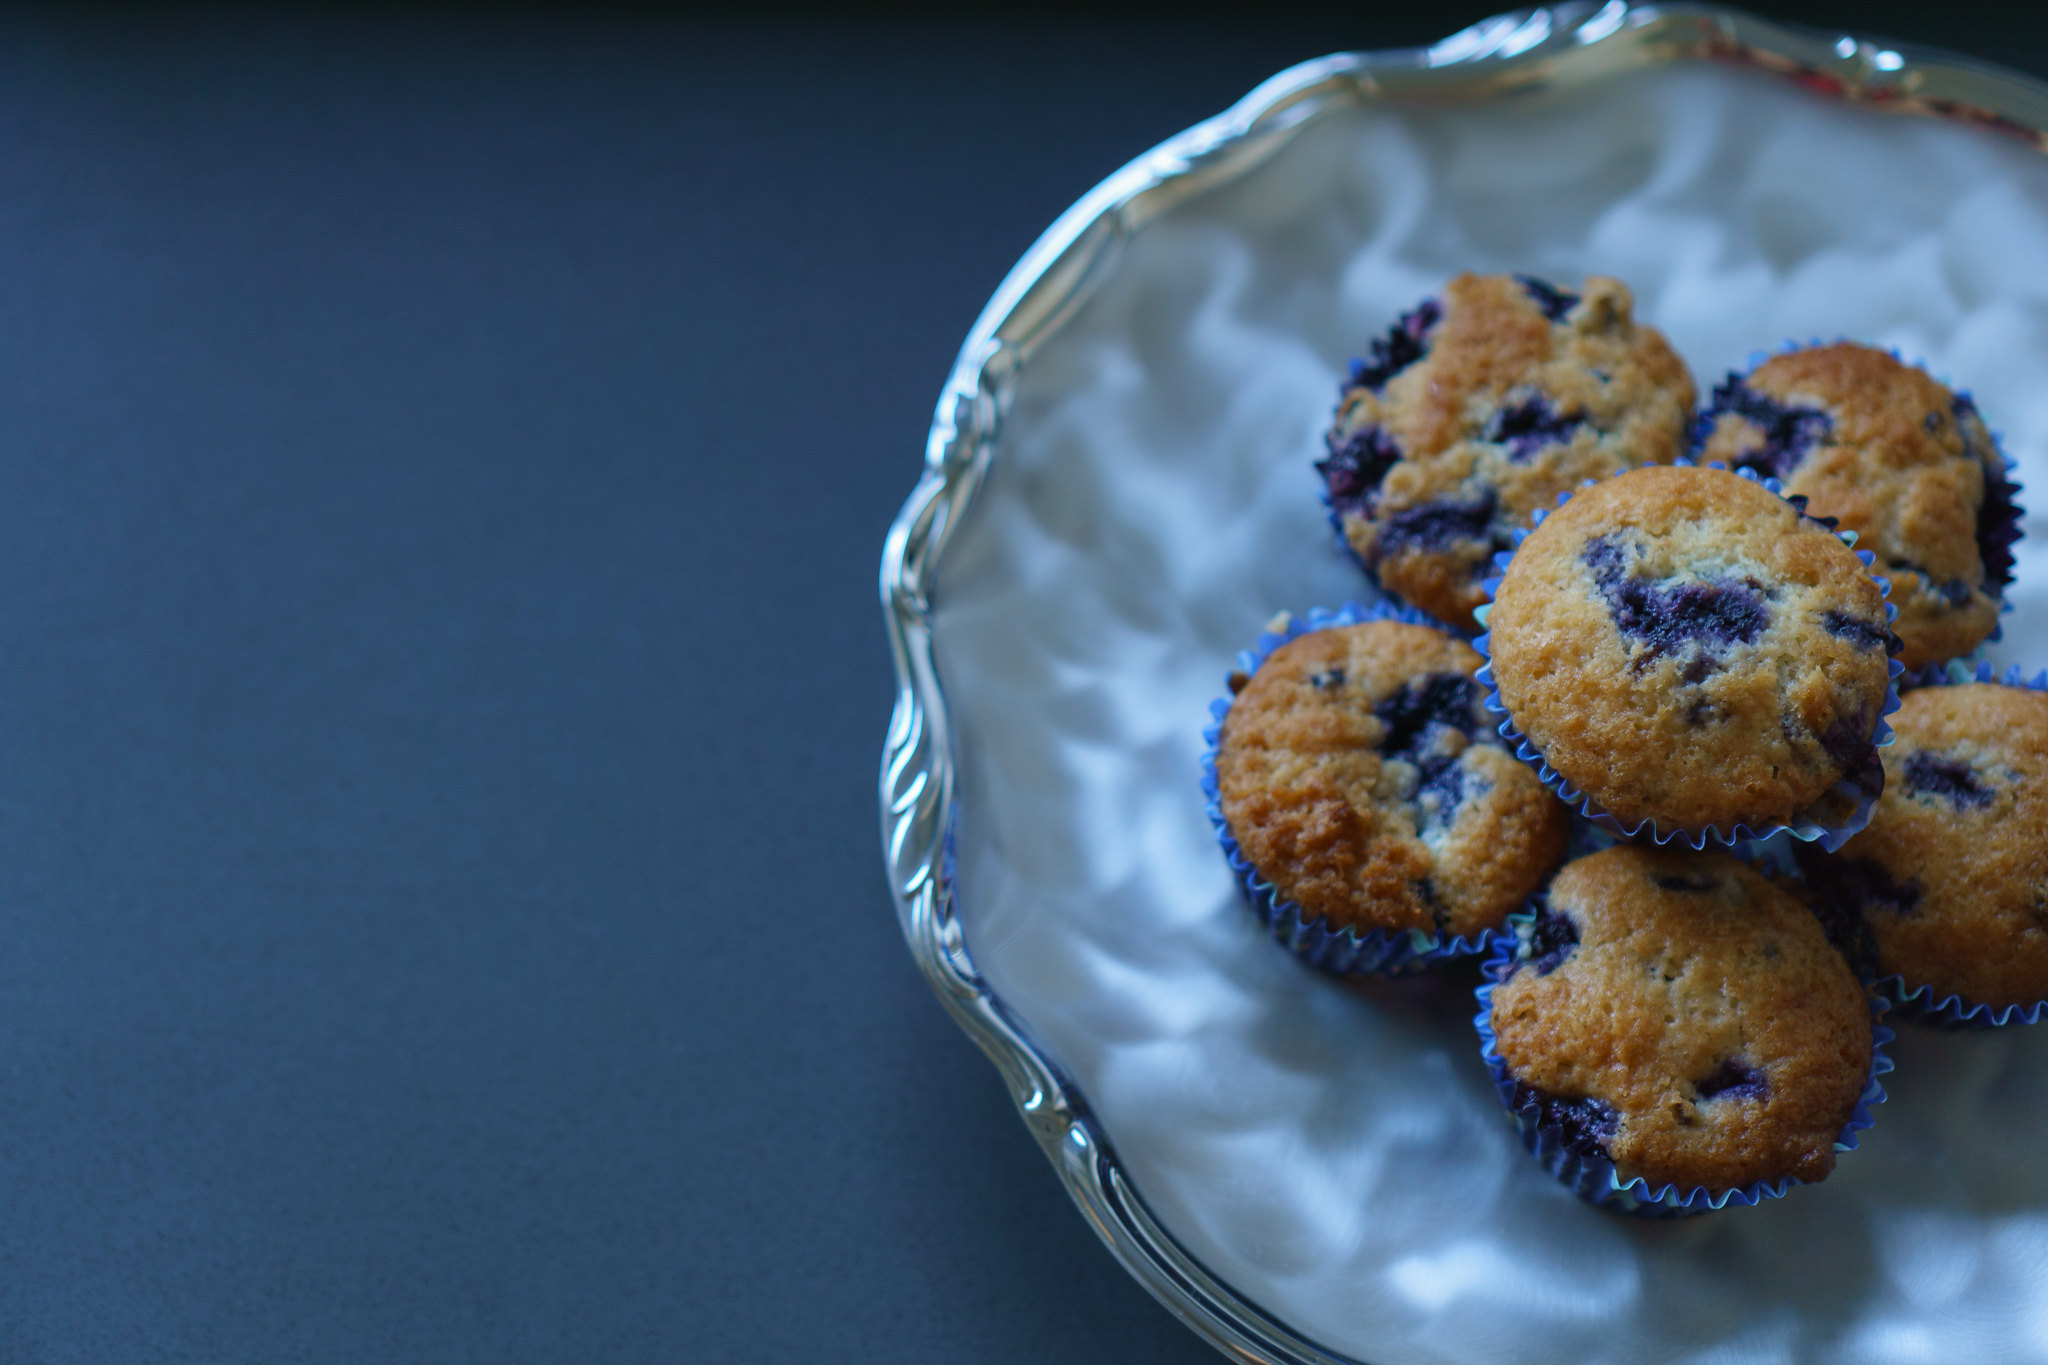 Blueberry Muffins on a Fancy Platter #2